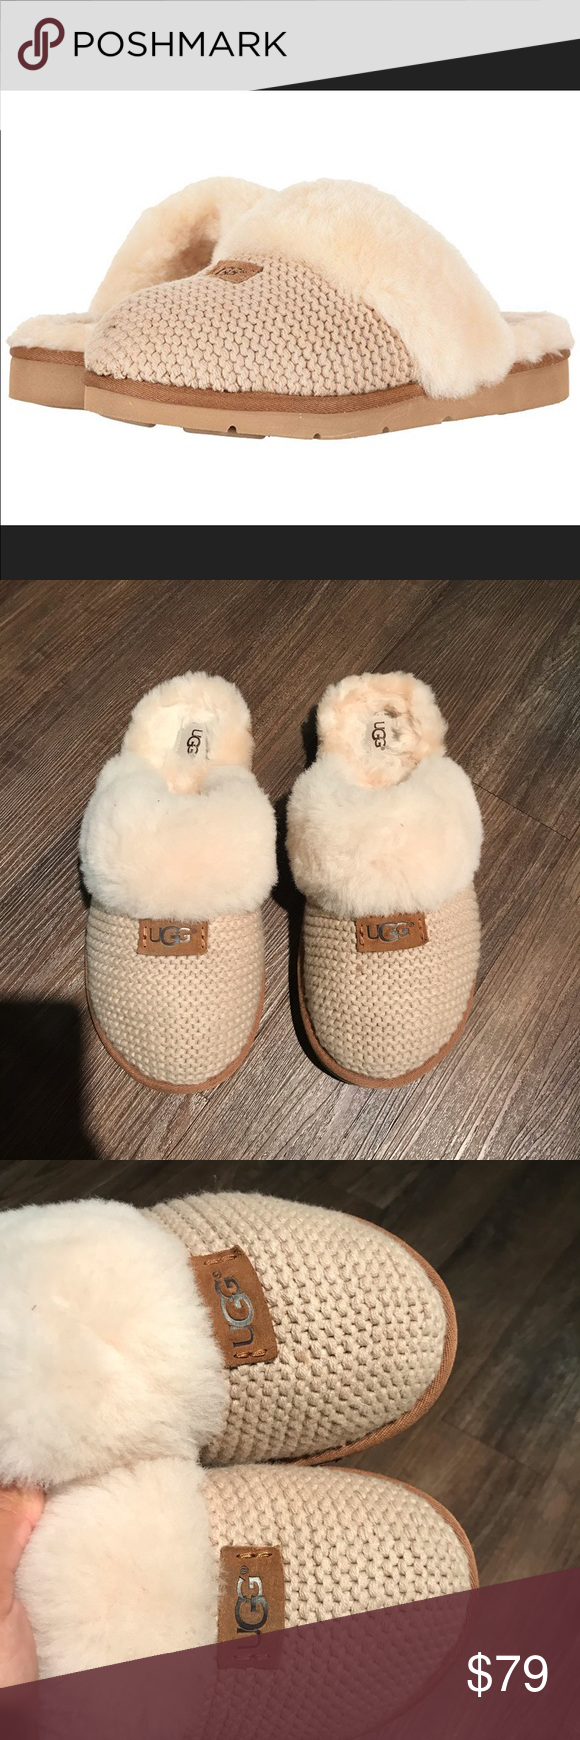 UGG 🔴 Cozy knot Shearling slipper In excellent preowned